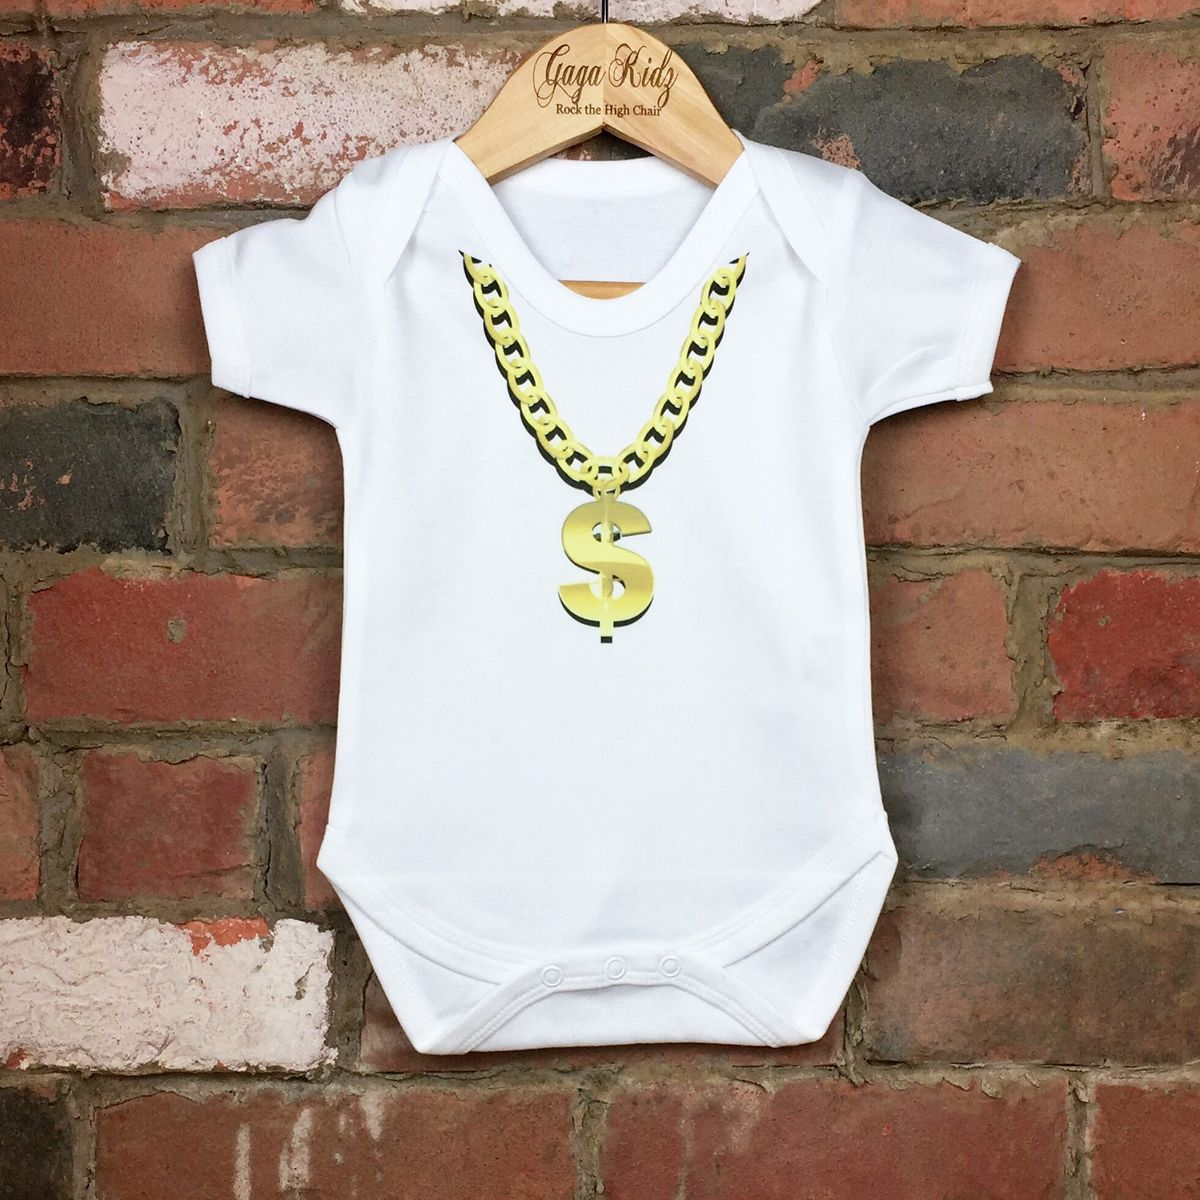 Gold Chain Necklace Baby/Toddler Bodysuit (various sizes) - product images  of